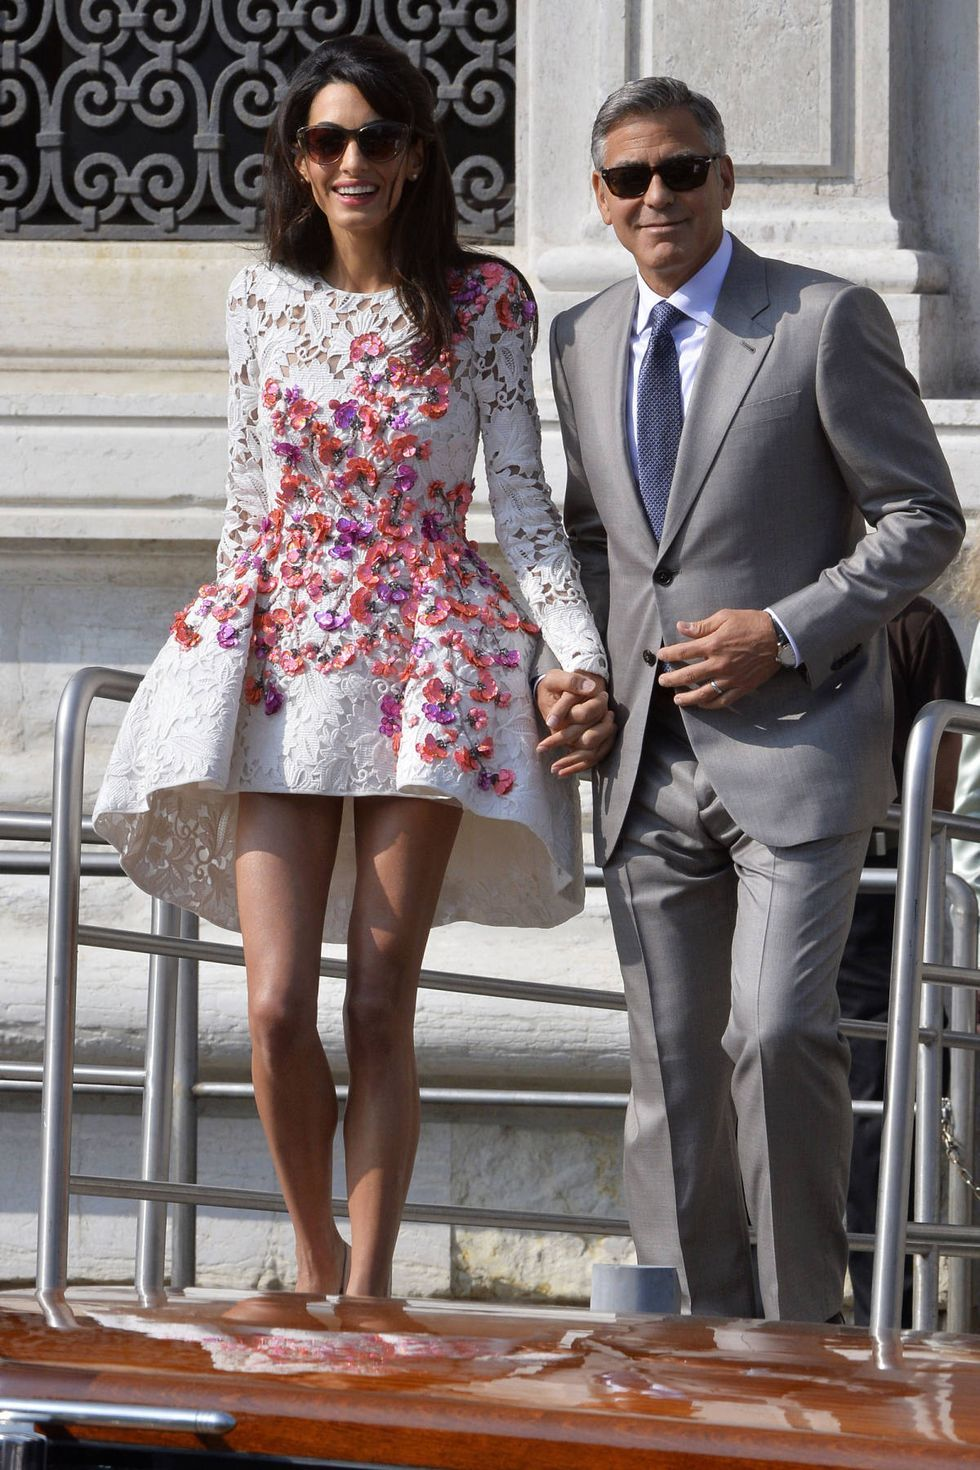 George Amal S Wedding In Pictures In 2020 Fashion Amal Clooney Wedding Amal Clooney